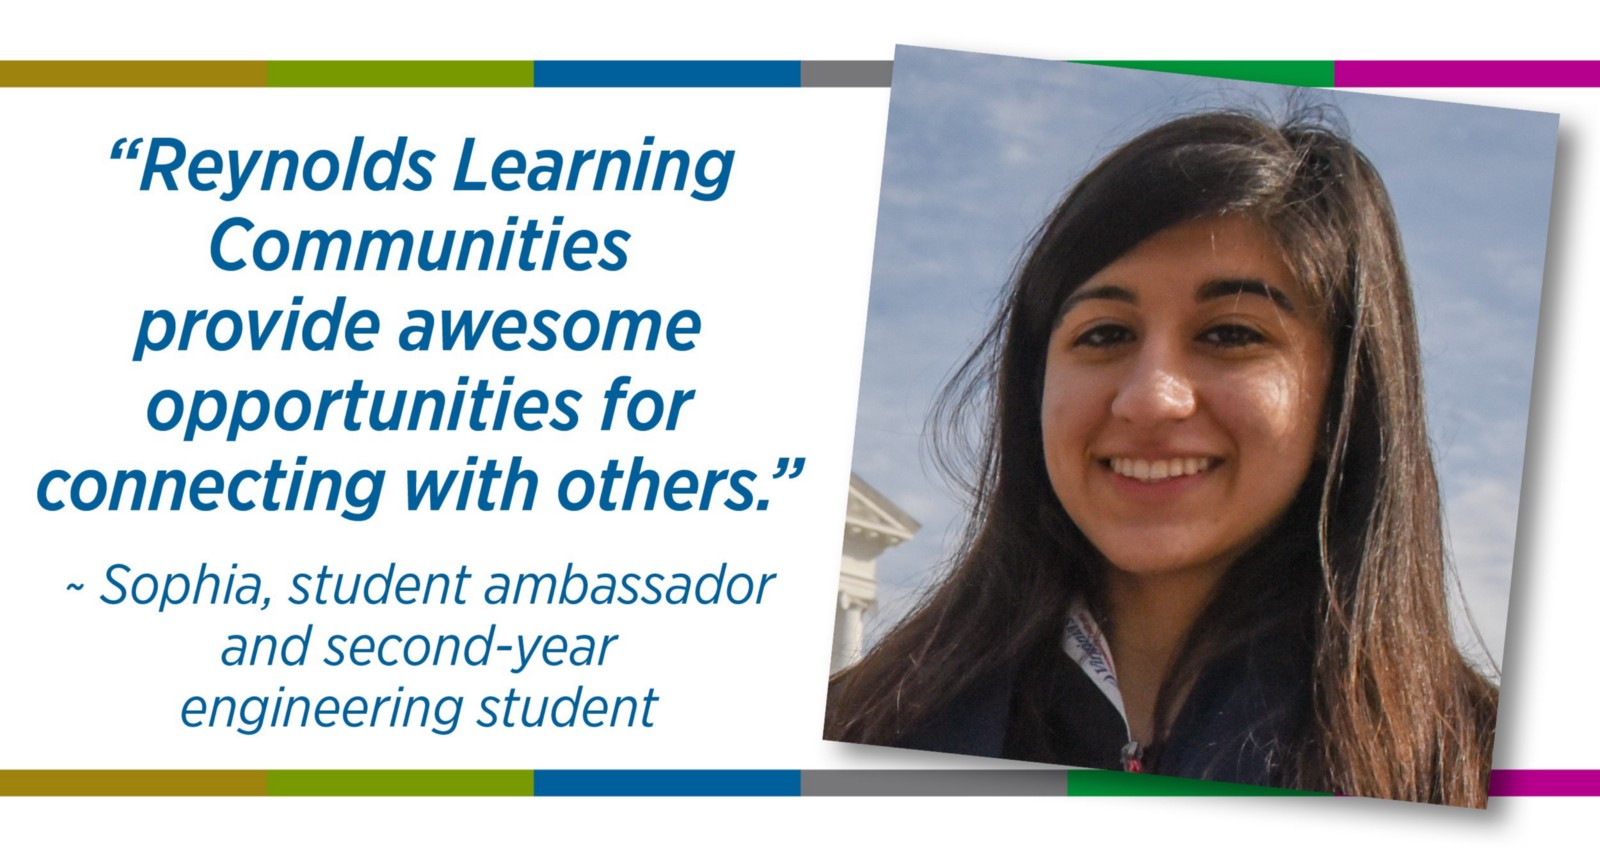 Reynolds Learning Communities provide awesome opportunities for connecting with others.